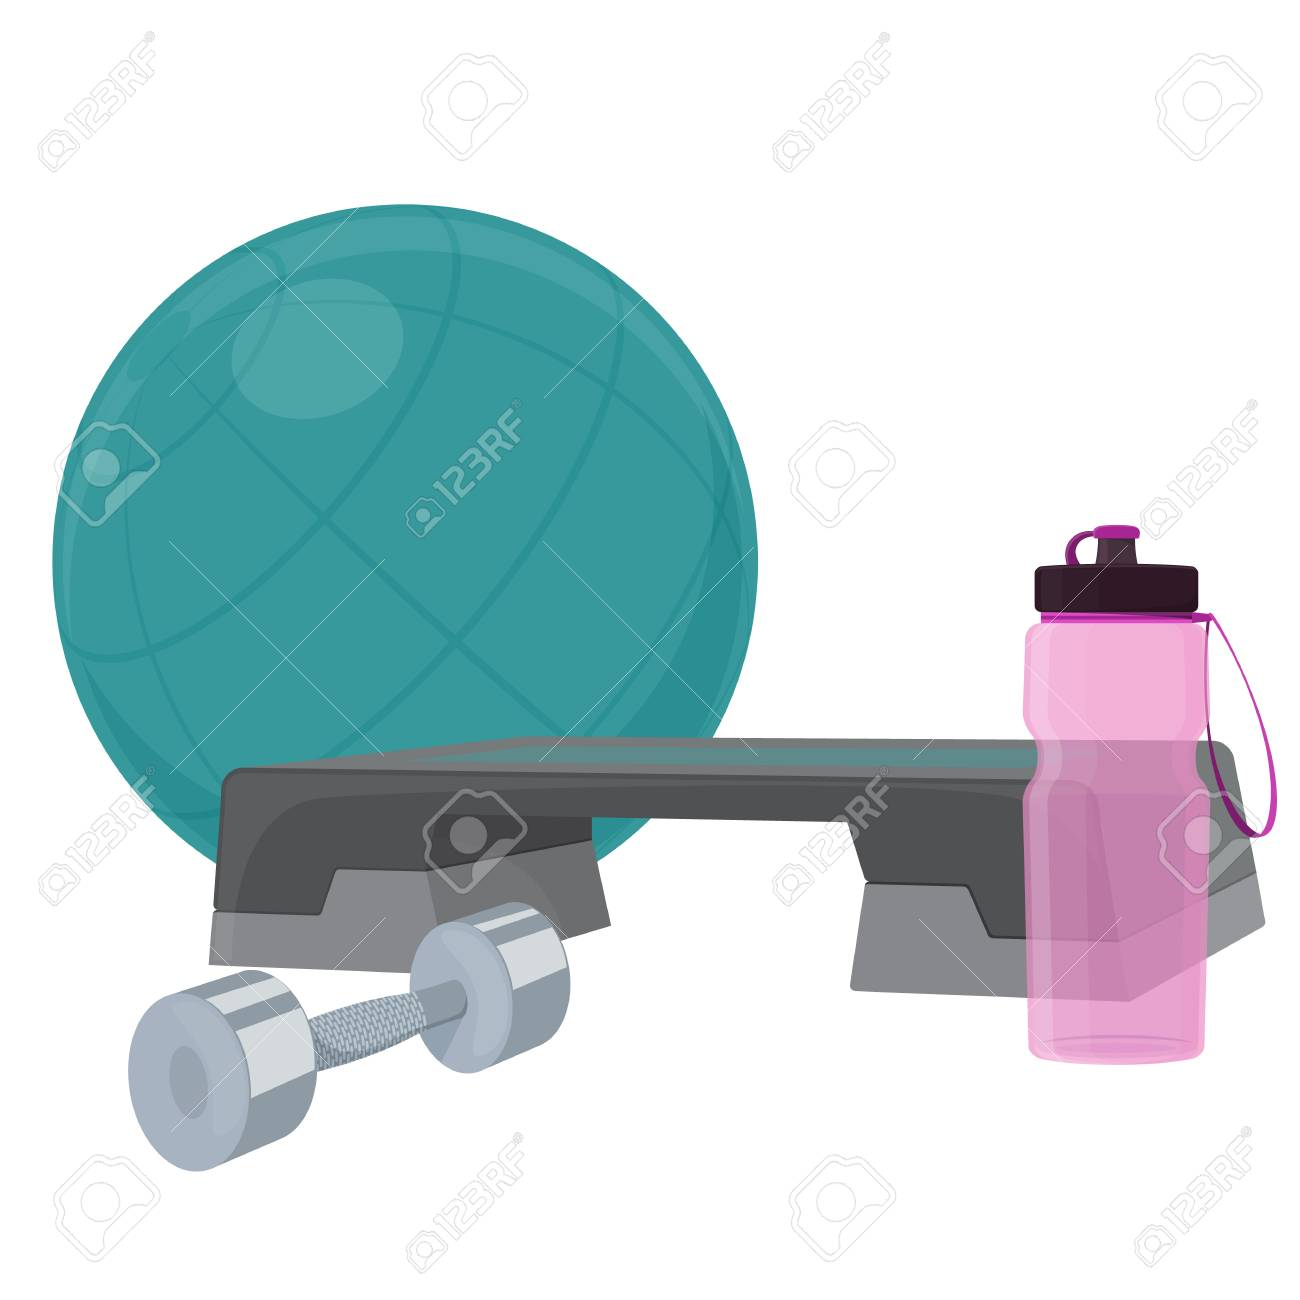 Set Of Fitness Accessories Cartoon Illustration Of Gym Equipment Royalty Free Cliparts Vectors And Stock Illustration Image 90669523